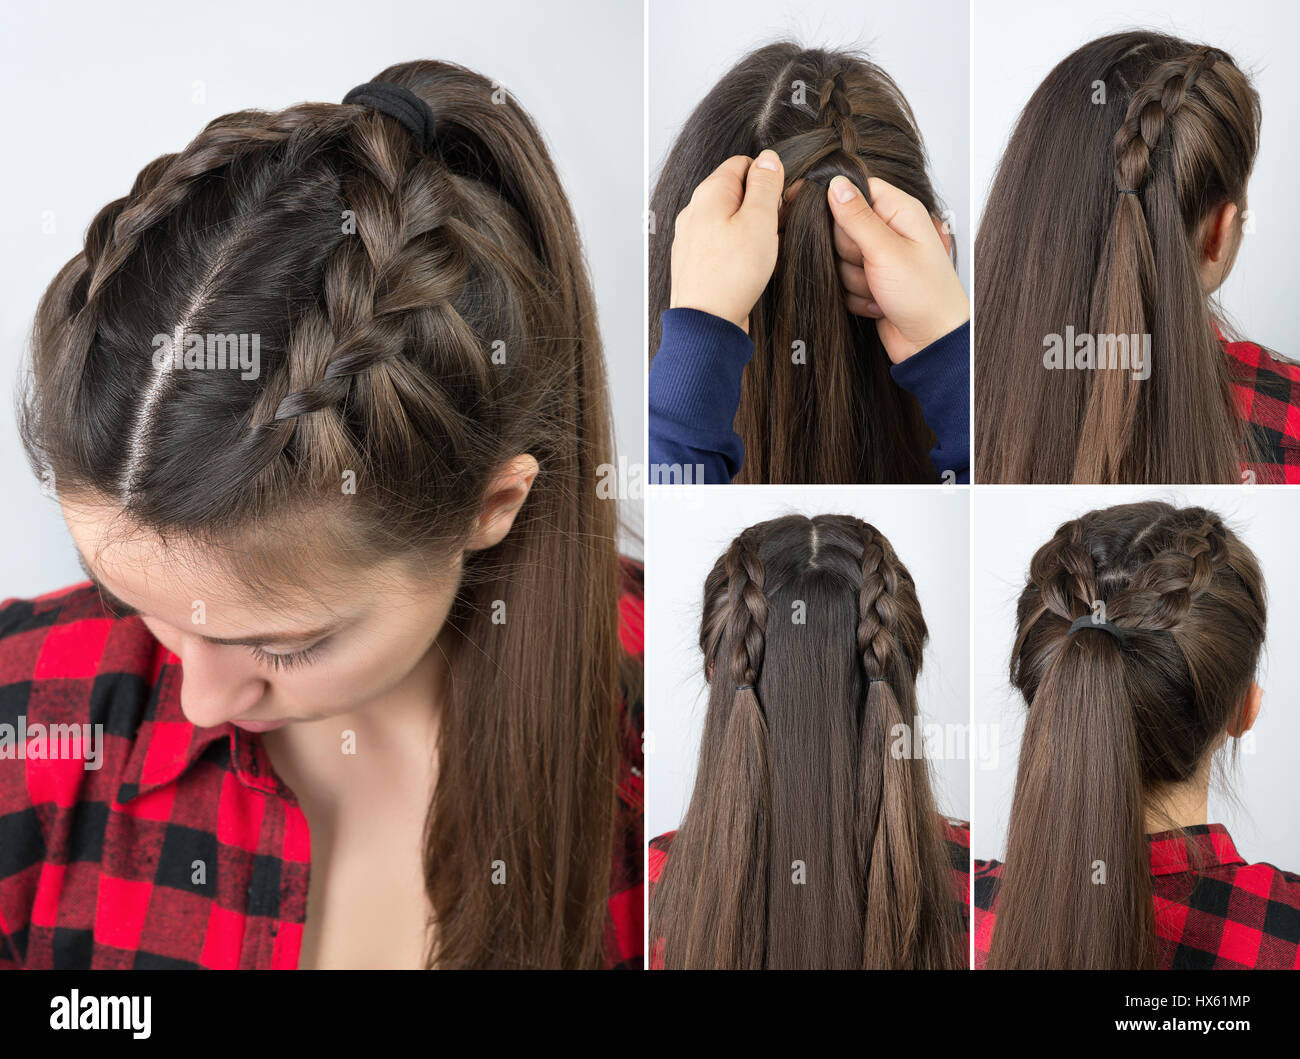 simple braided hairstyle tutorial step by step. Easy hairstyle for ...